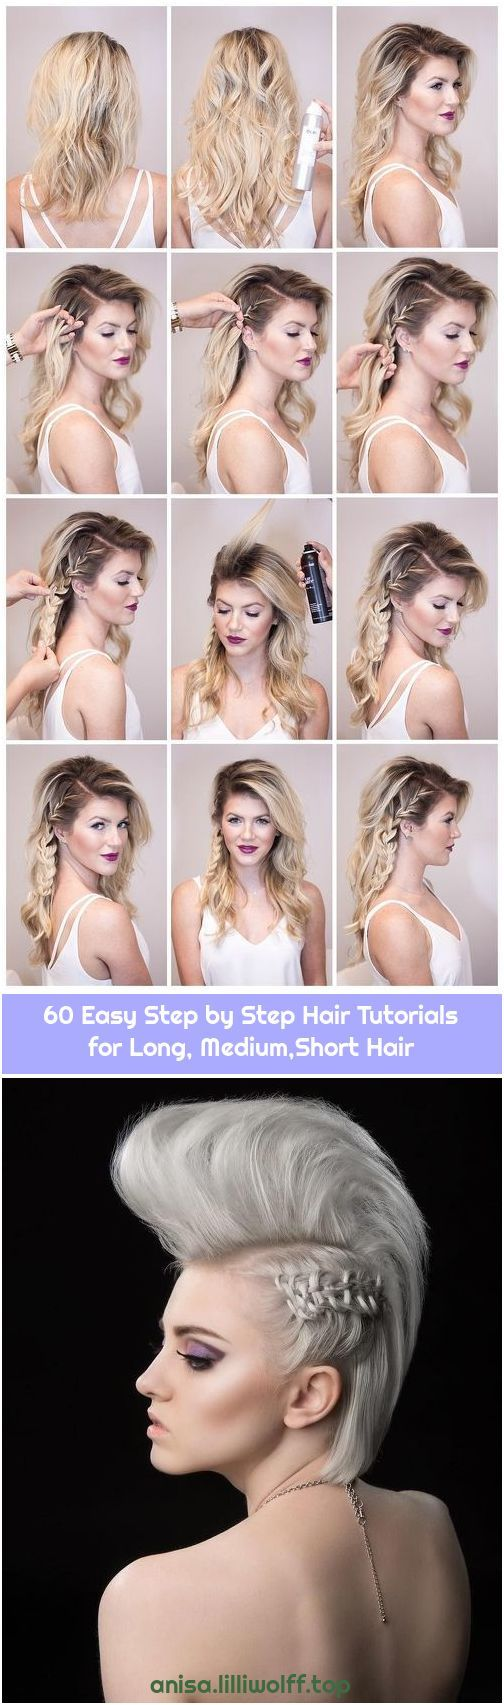 60 Easy Step by Step Hair Tutorials for Long, Medium,Short Hair #sidebraidhairstyles